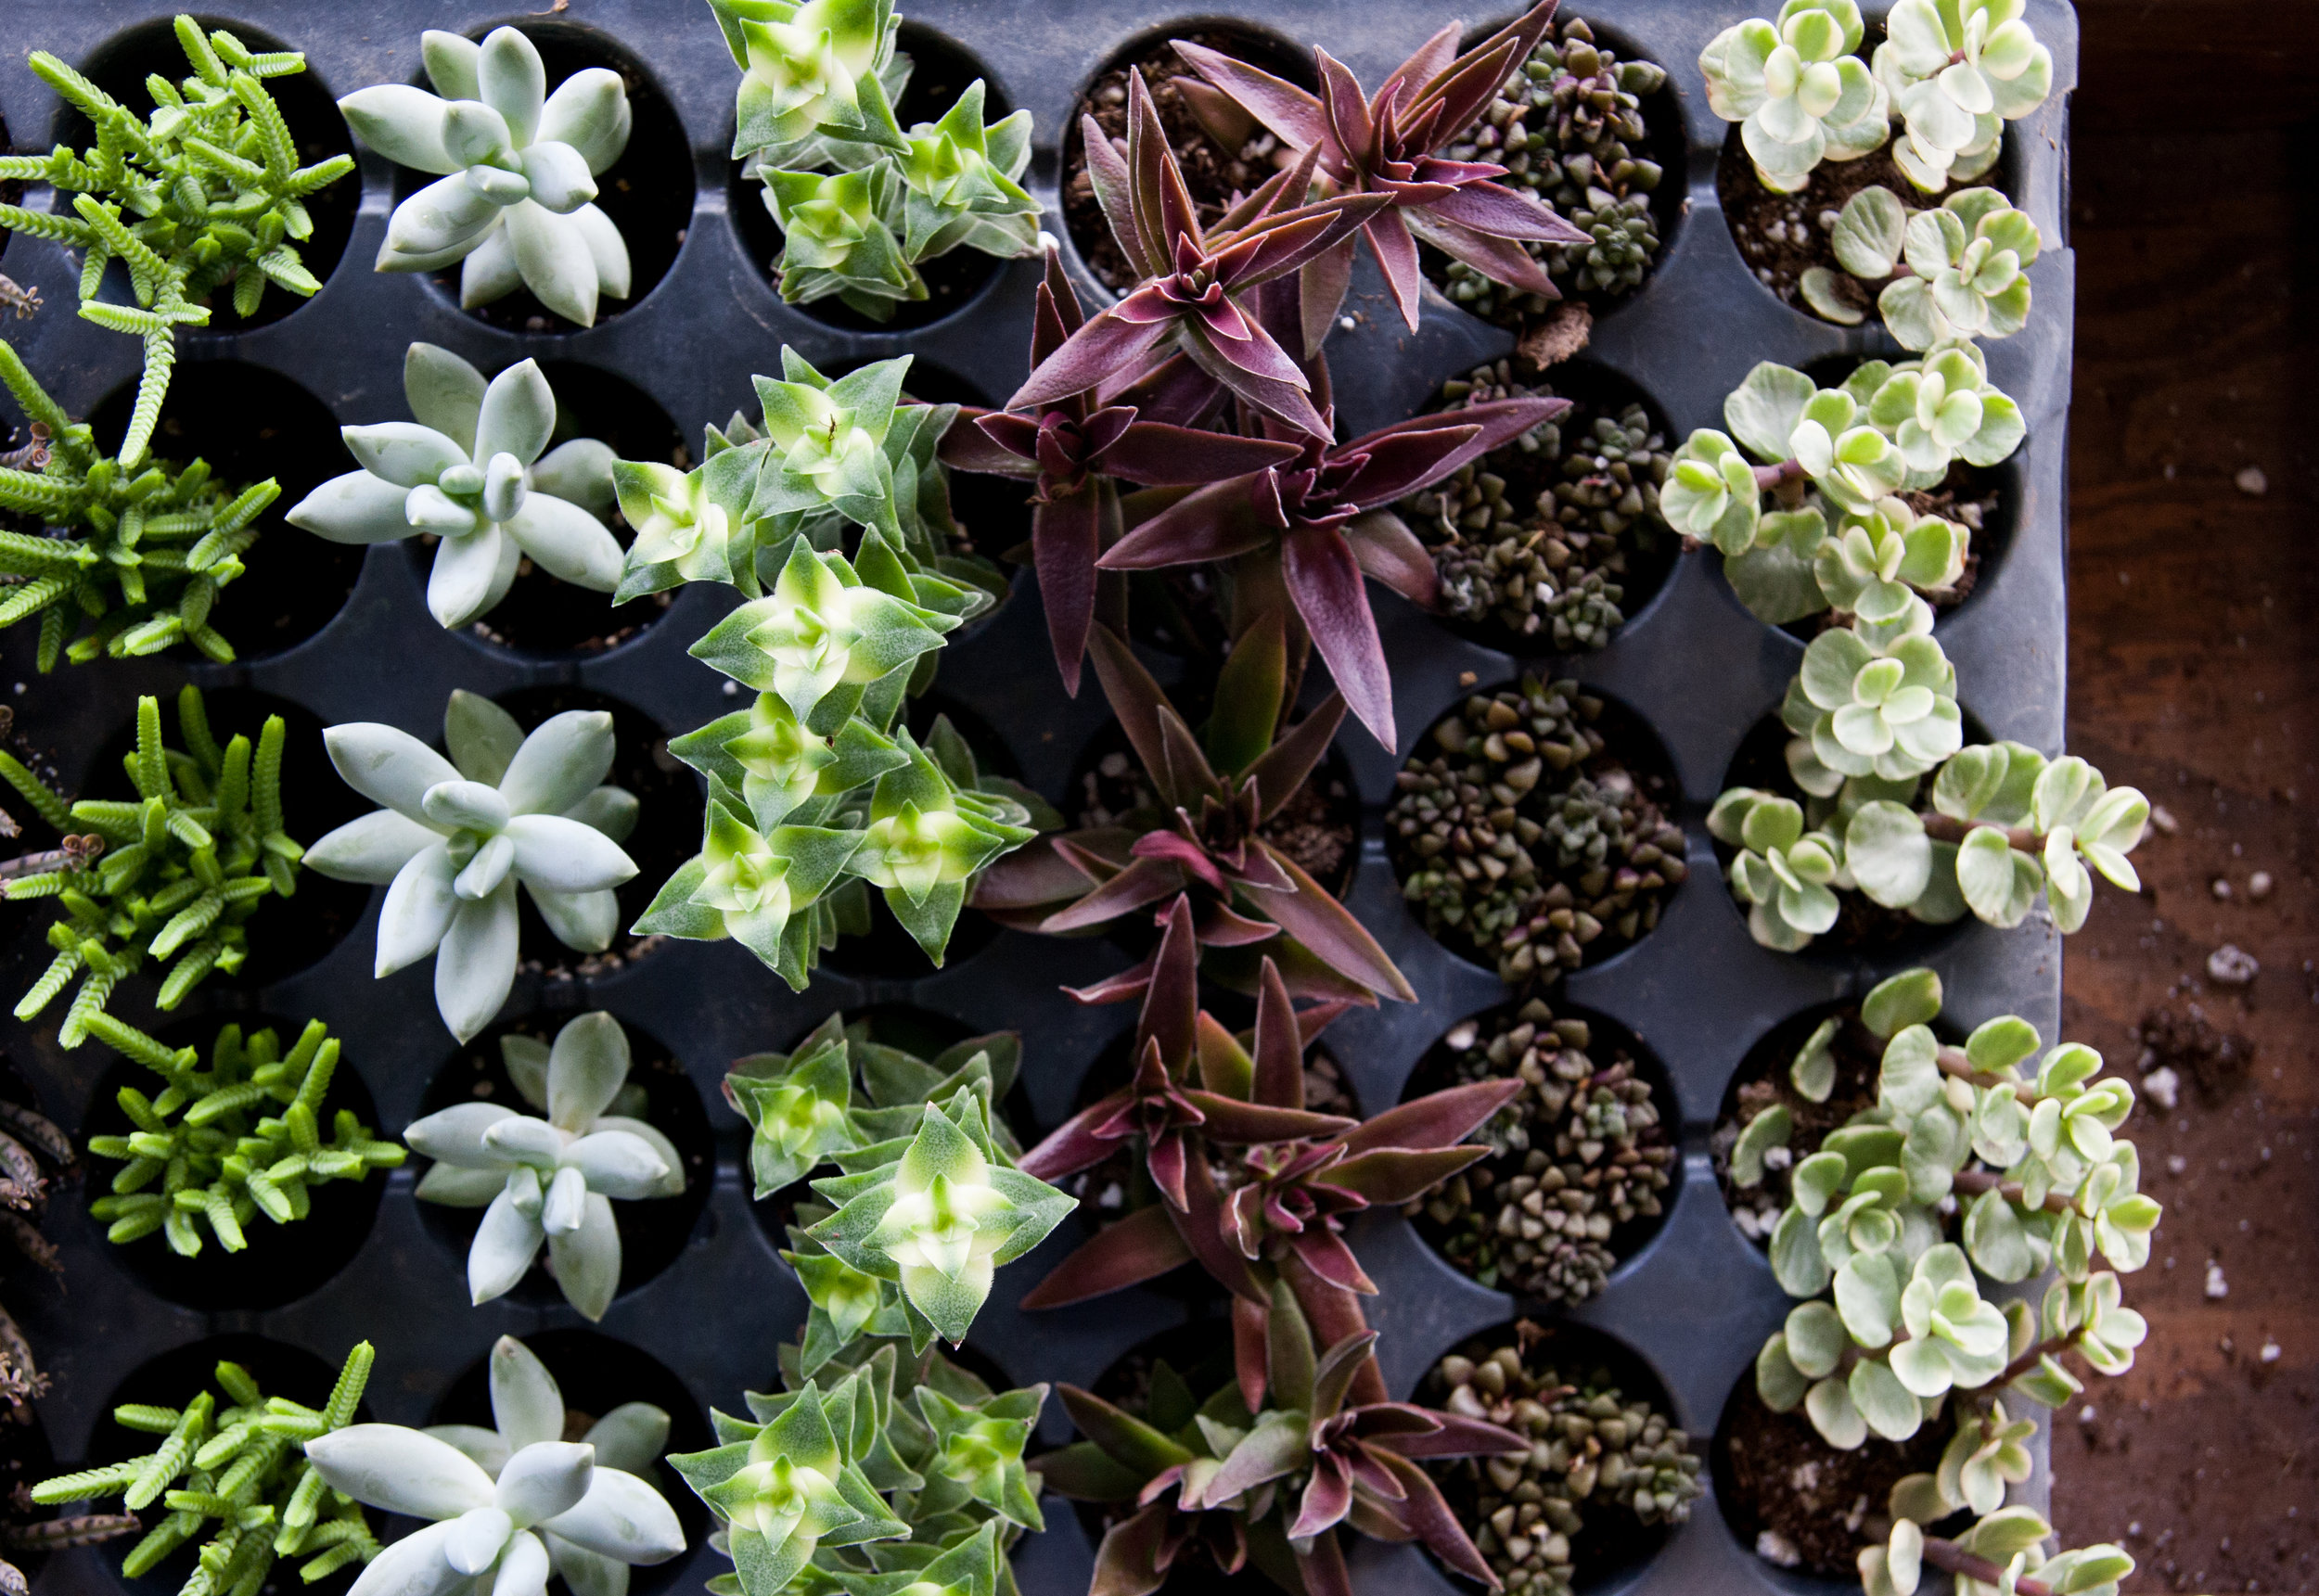 Succulent Saturday is TOMORROW, November 11! Come in and plant some plants and talk to the expert 11-6pm.